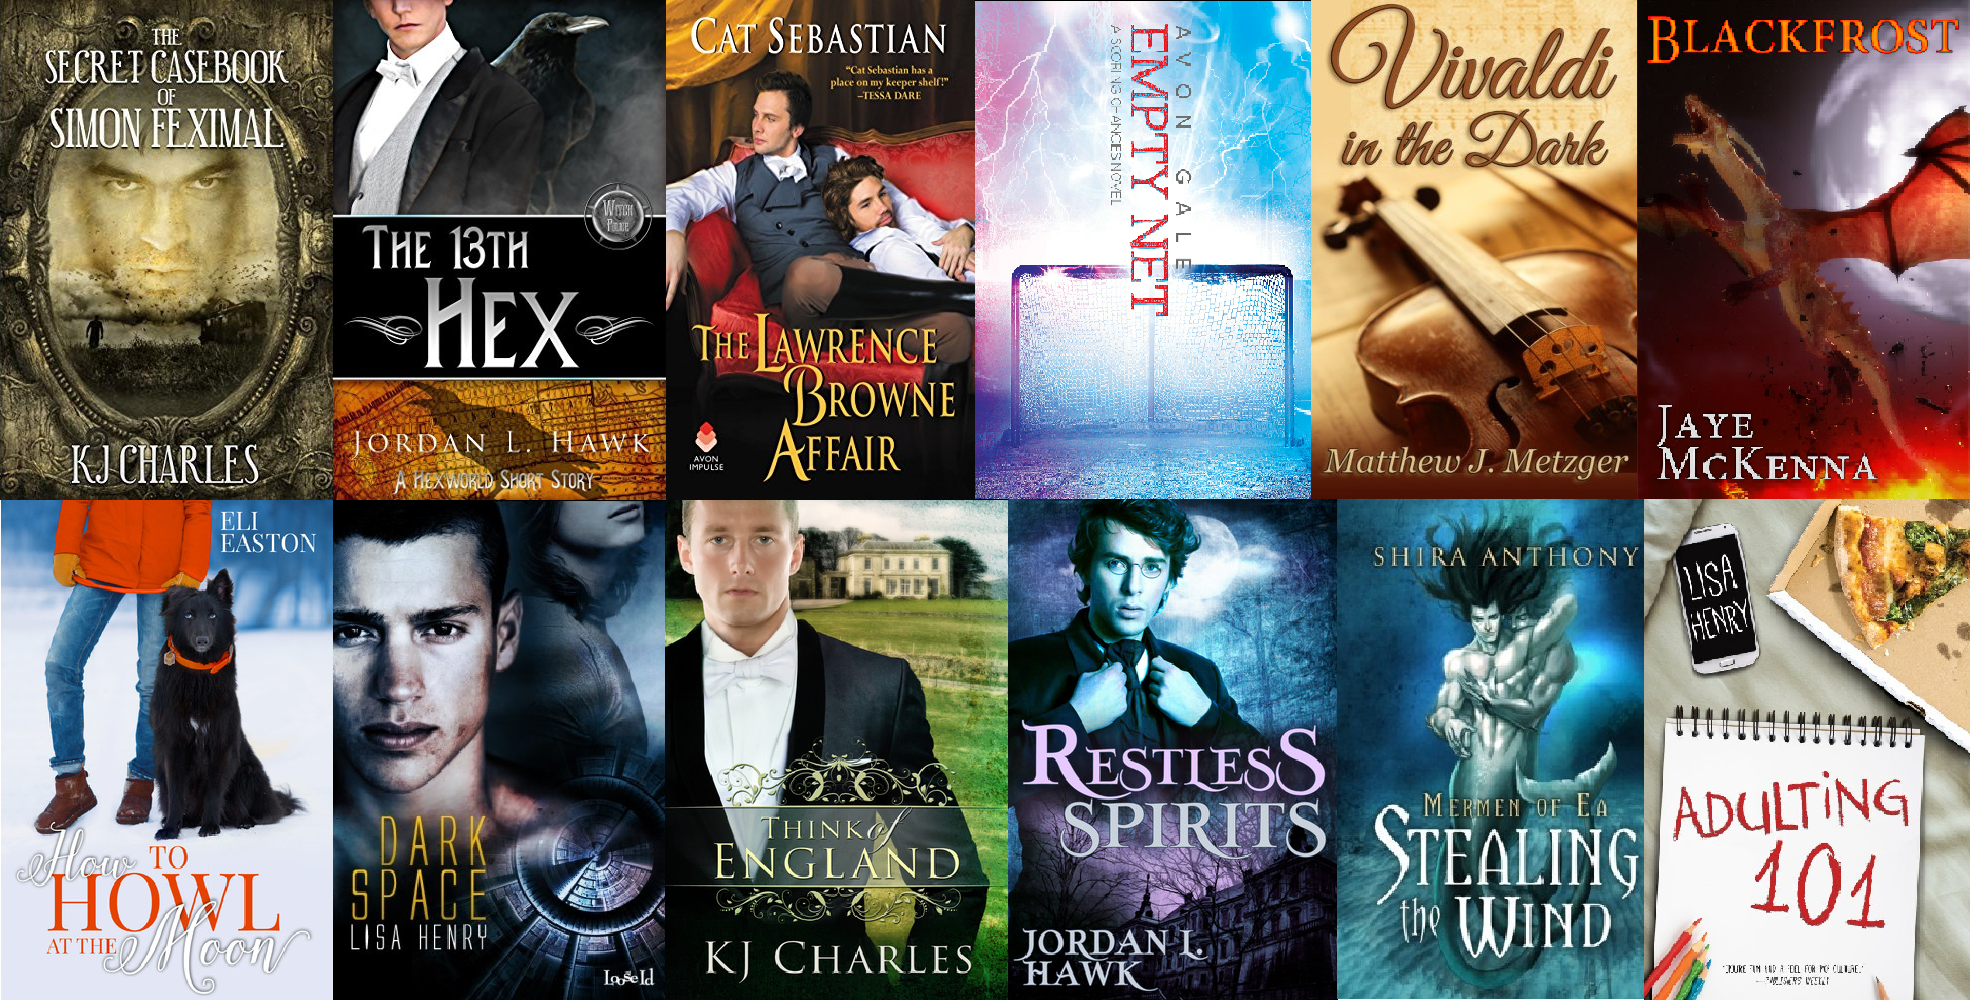 Twelve books/series I discovered during my second year as a Romance reader.